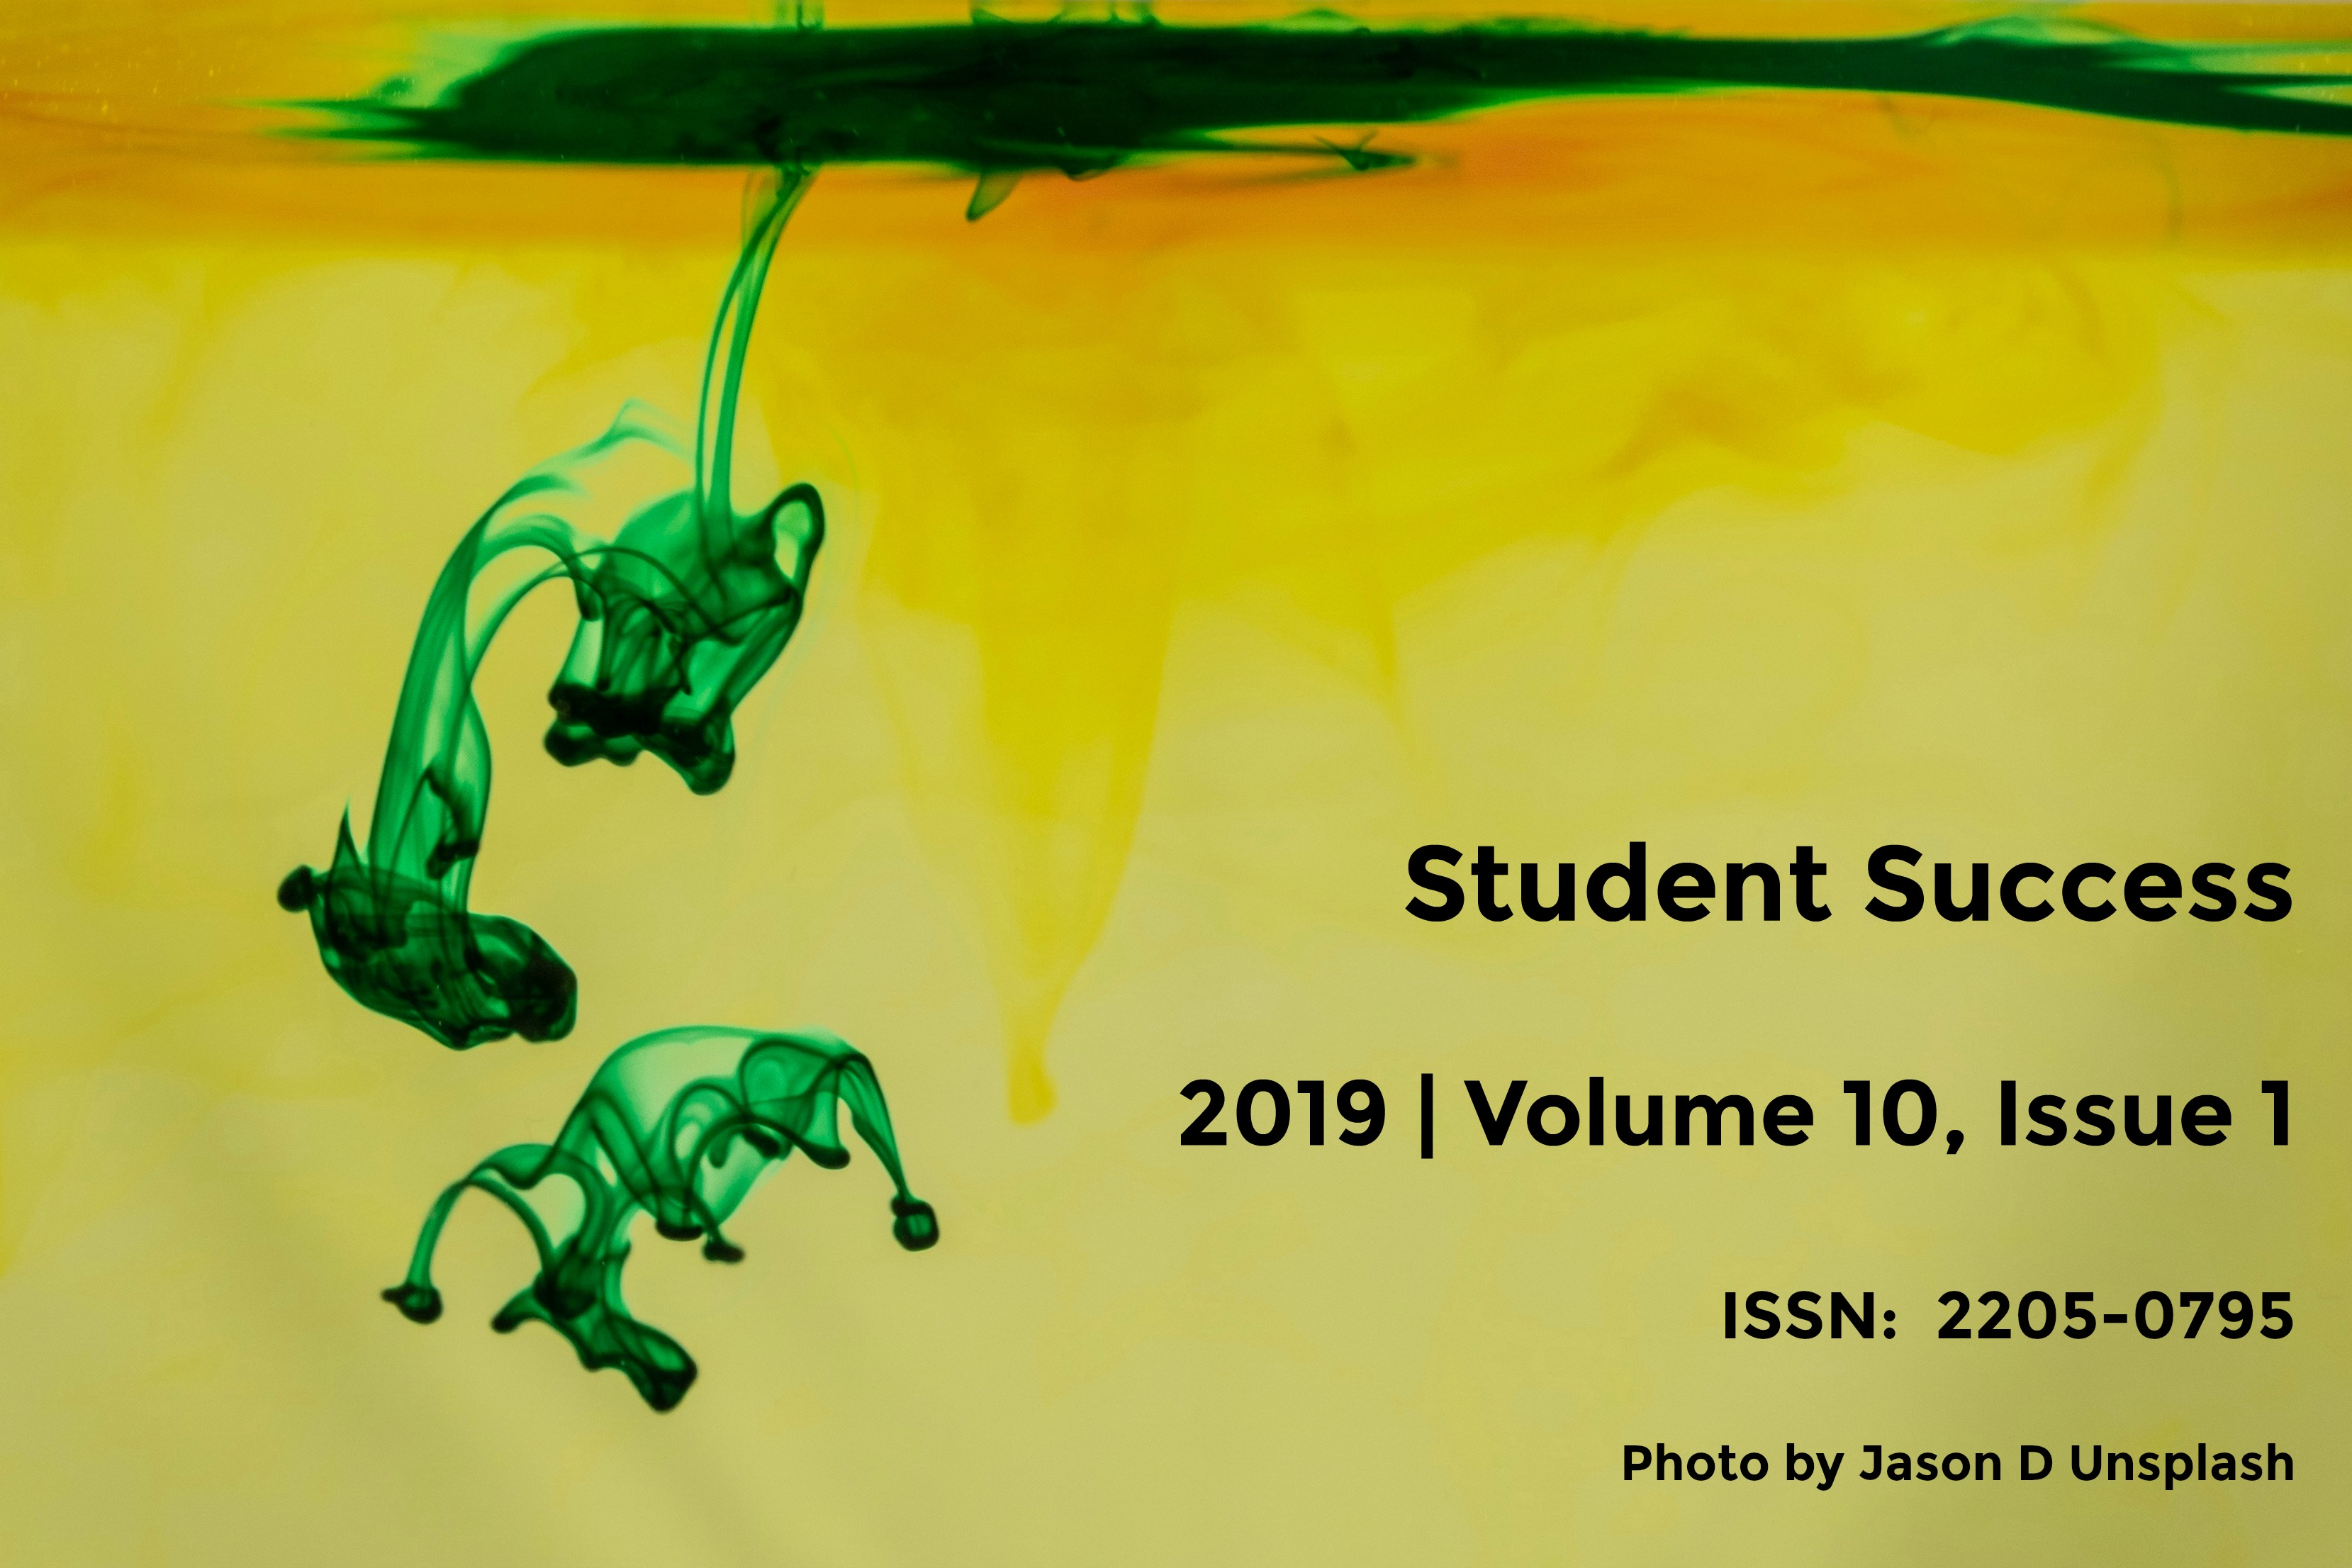 Student Success Volume 10